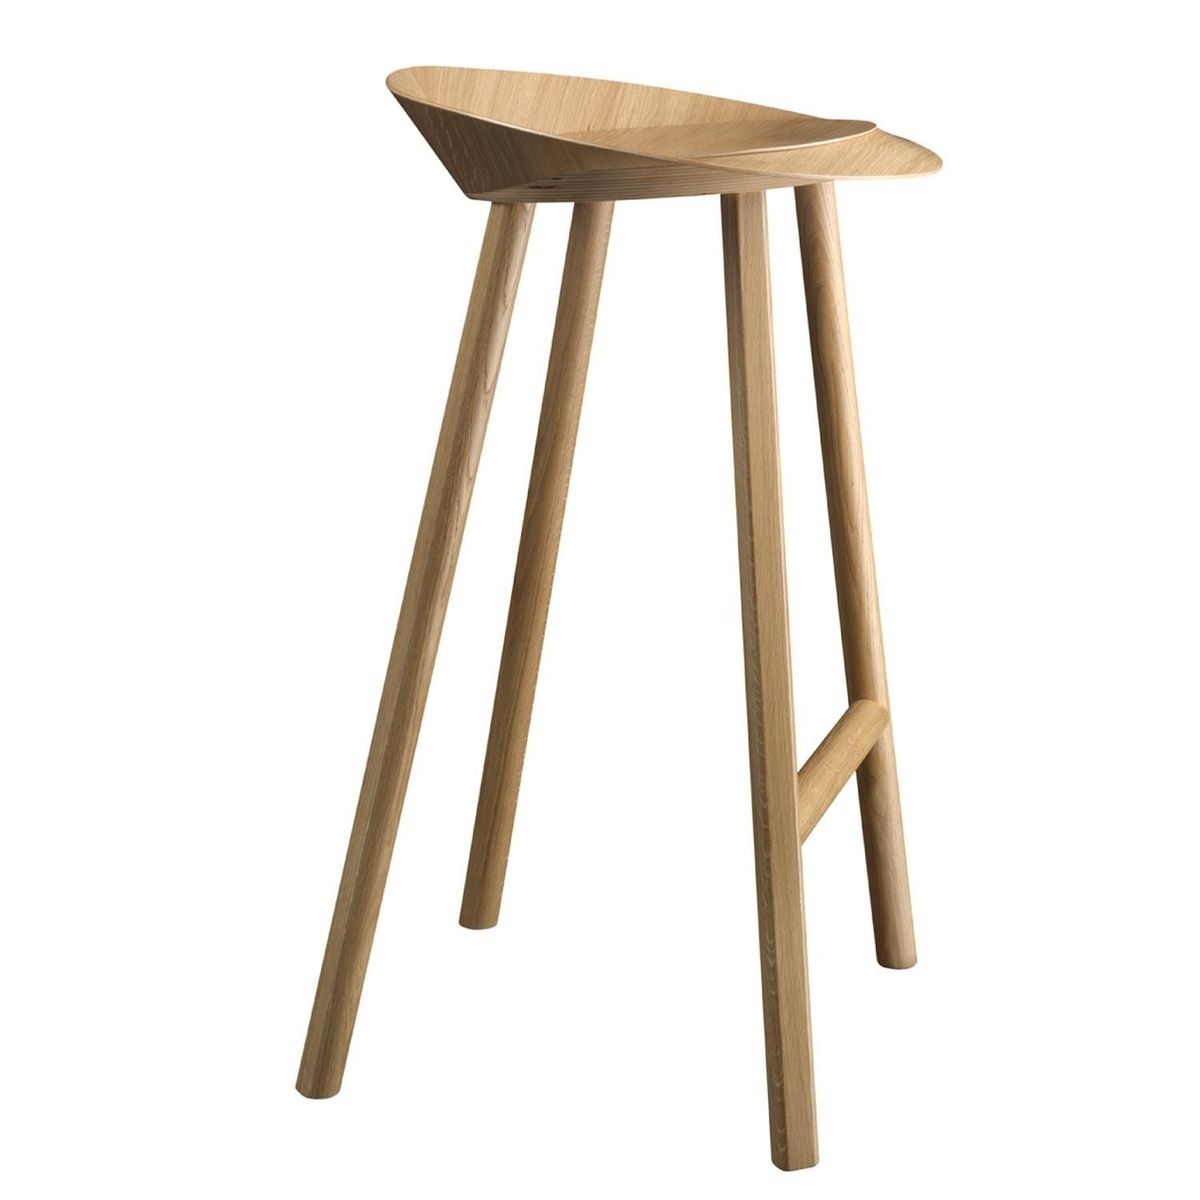 tabouret counter stool barhocker hhenverstellbar holz ideen fr zuhause e15 jean barhocker st10. Black Bedroom Furniture Sets. Home Design Ideas